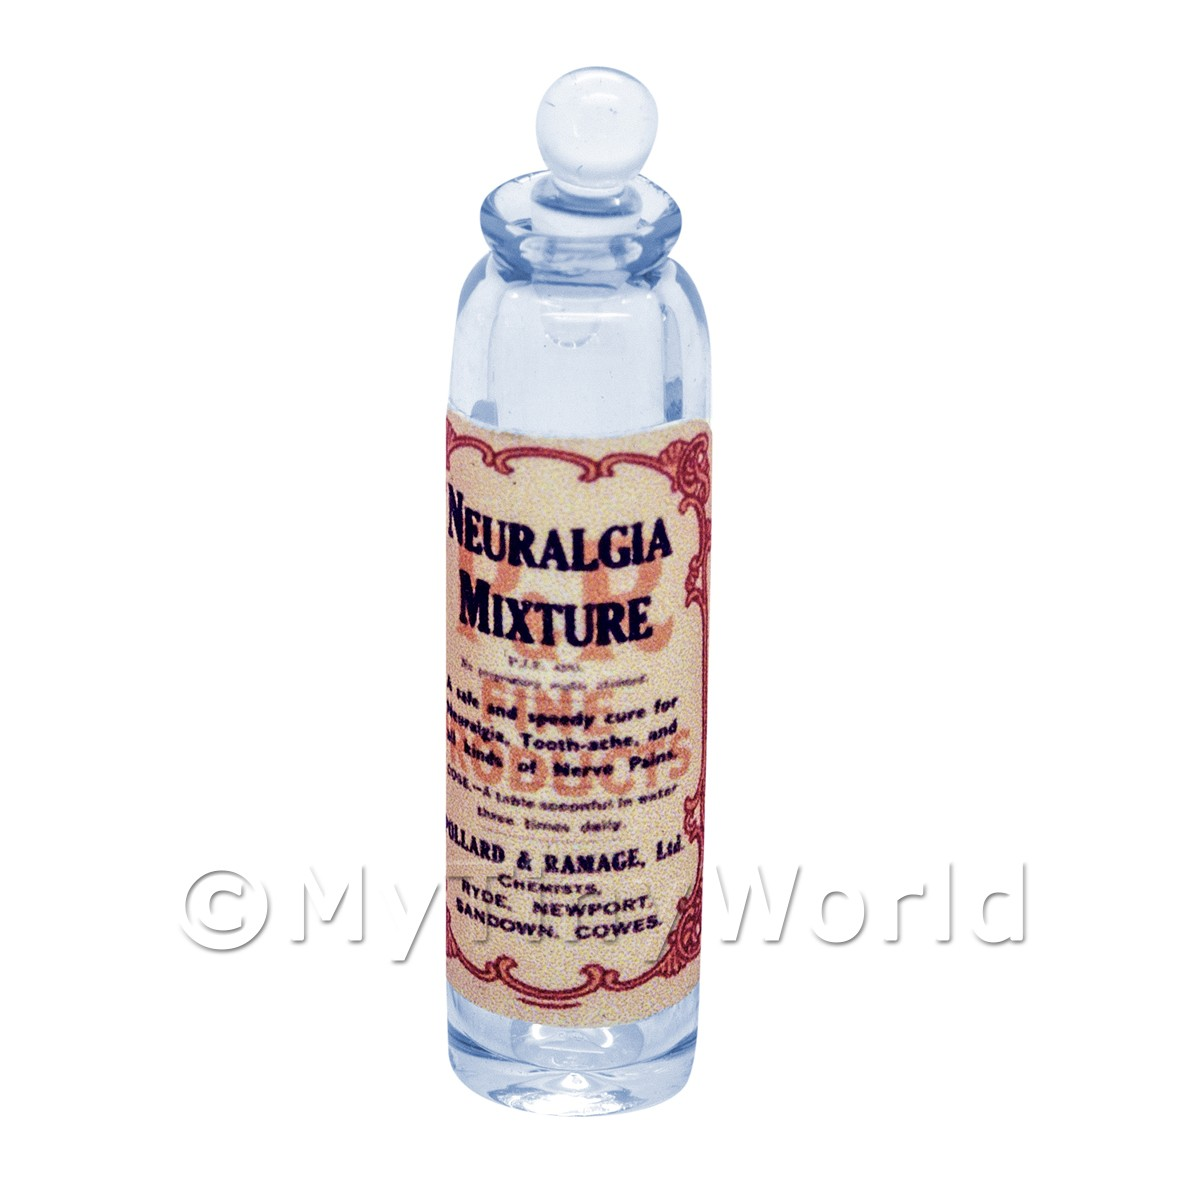 Miniature Neuralgia Mixture Blue Glass Apothecary Bottle